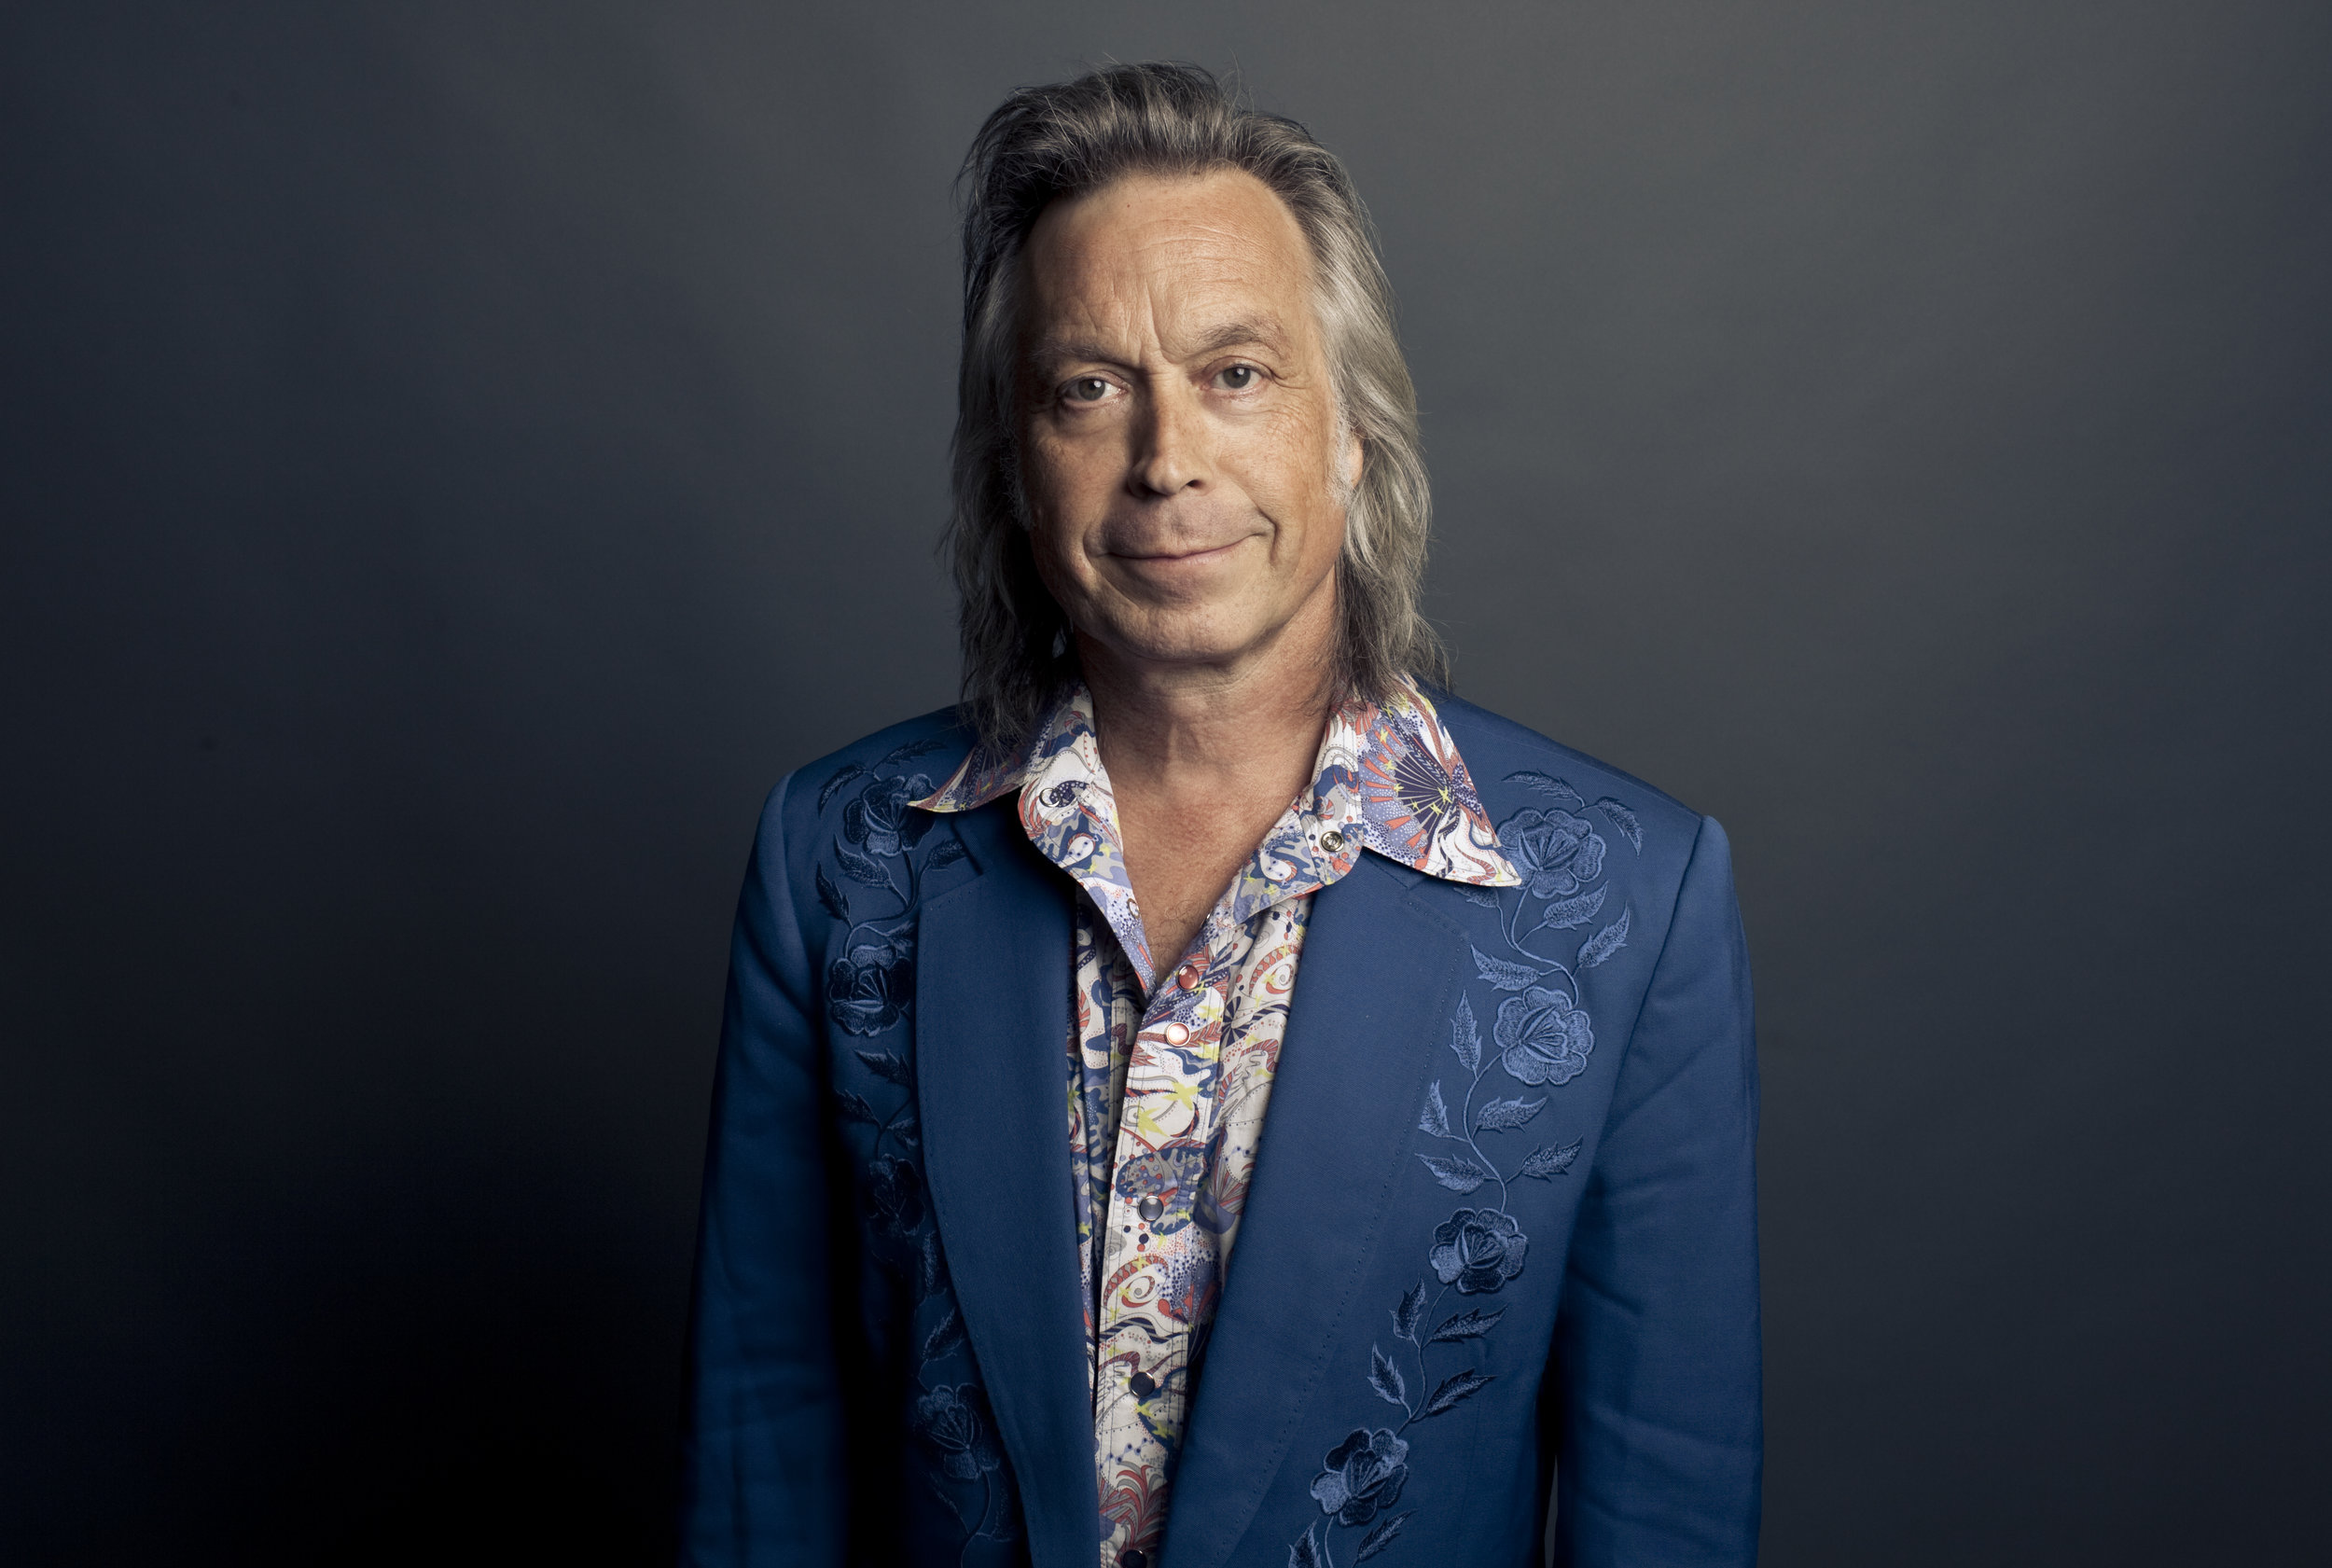 JIM LAUDERDALE - Hosting Writers Round Saturday 26 May, 7 PMFestival Performance Saturday 26 May, 10 PM